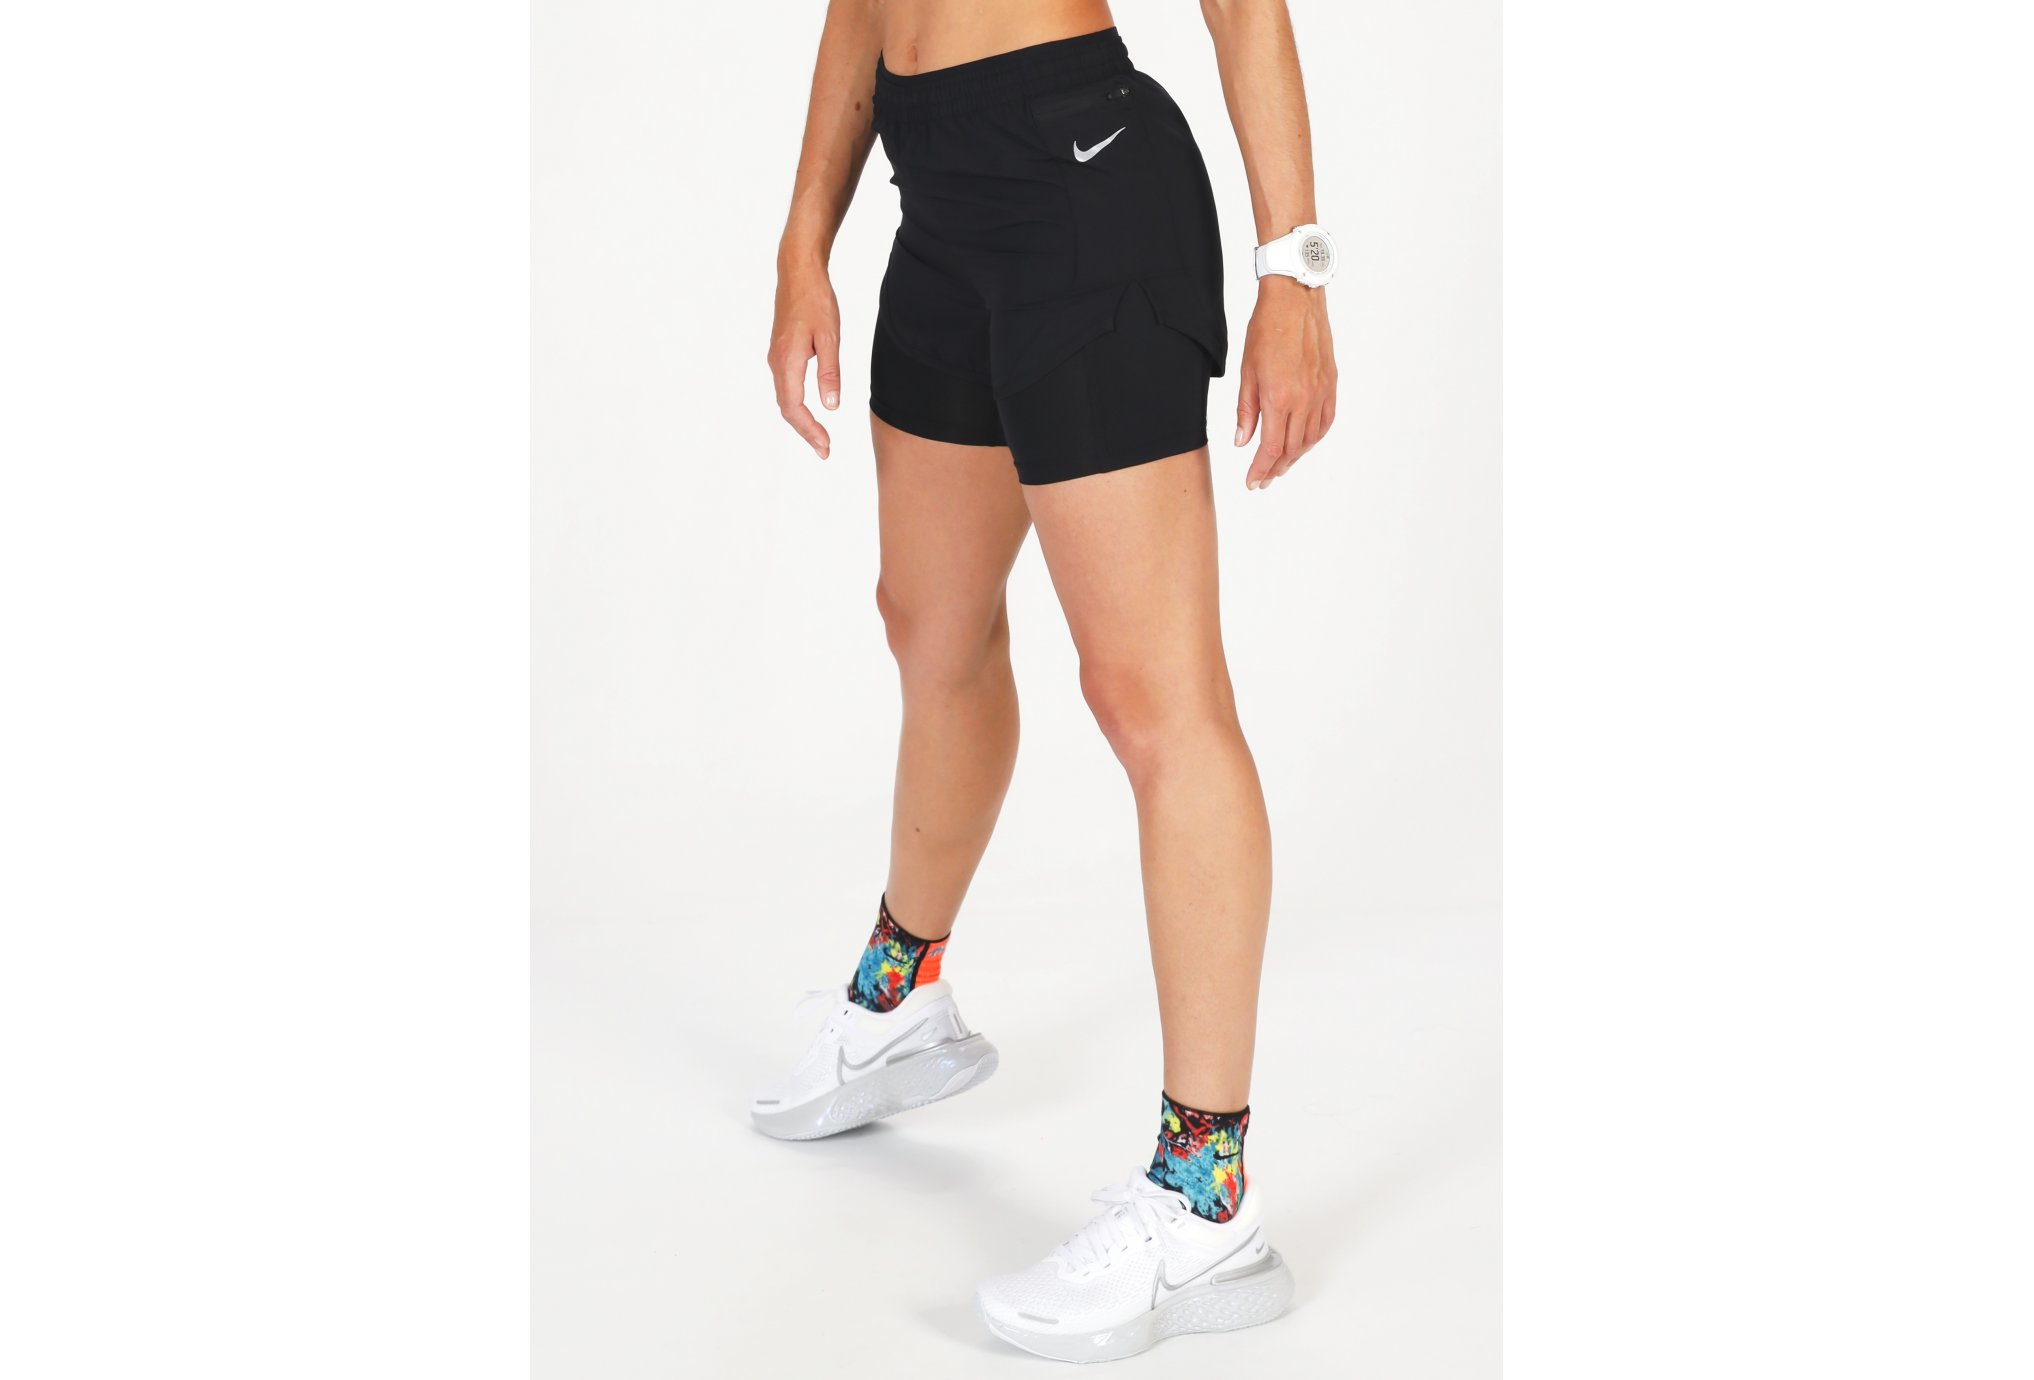 Nike Tempo Luxe 2 in 1 W vêtement running femme